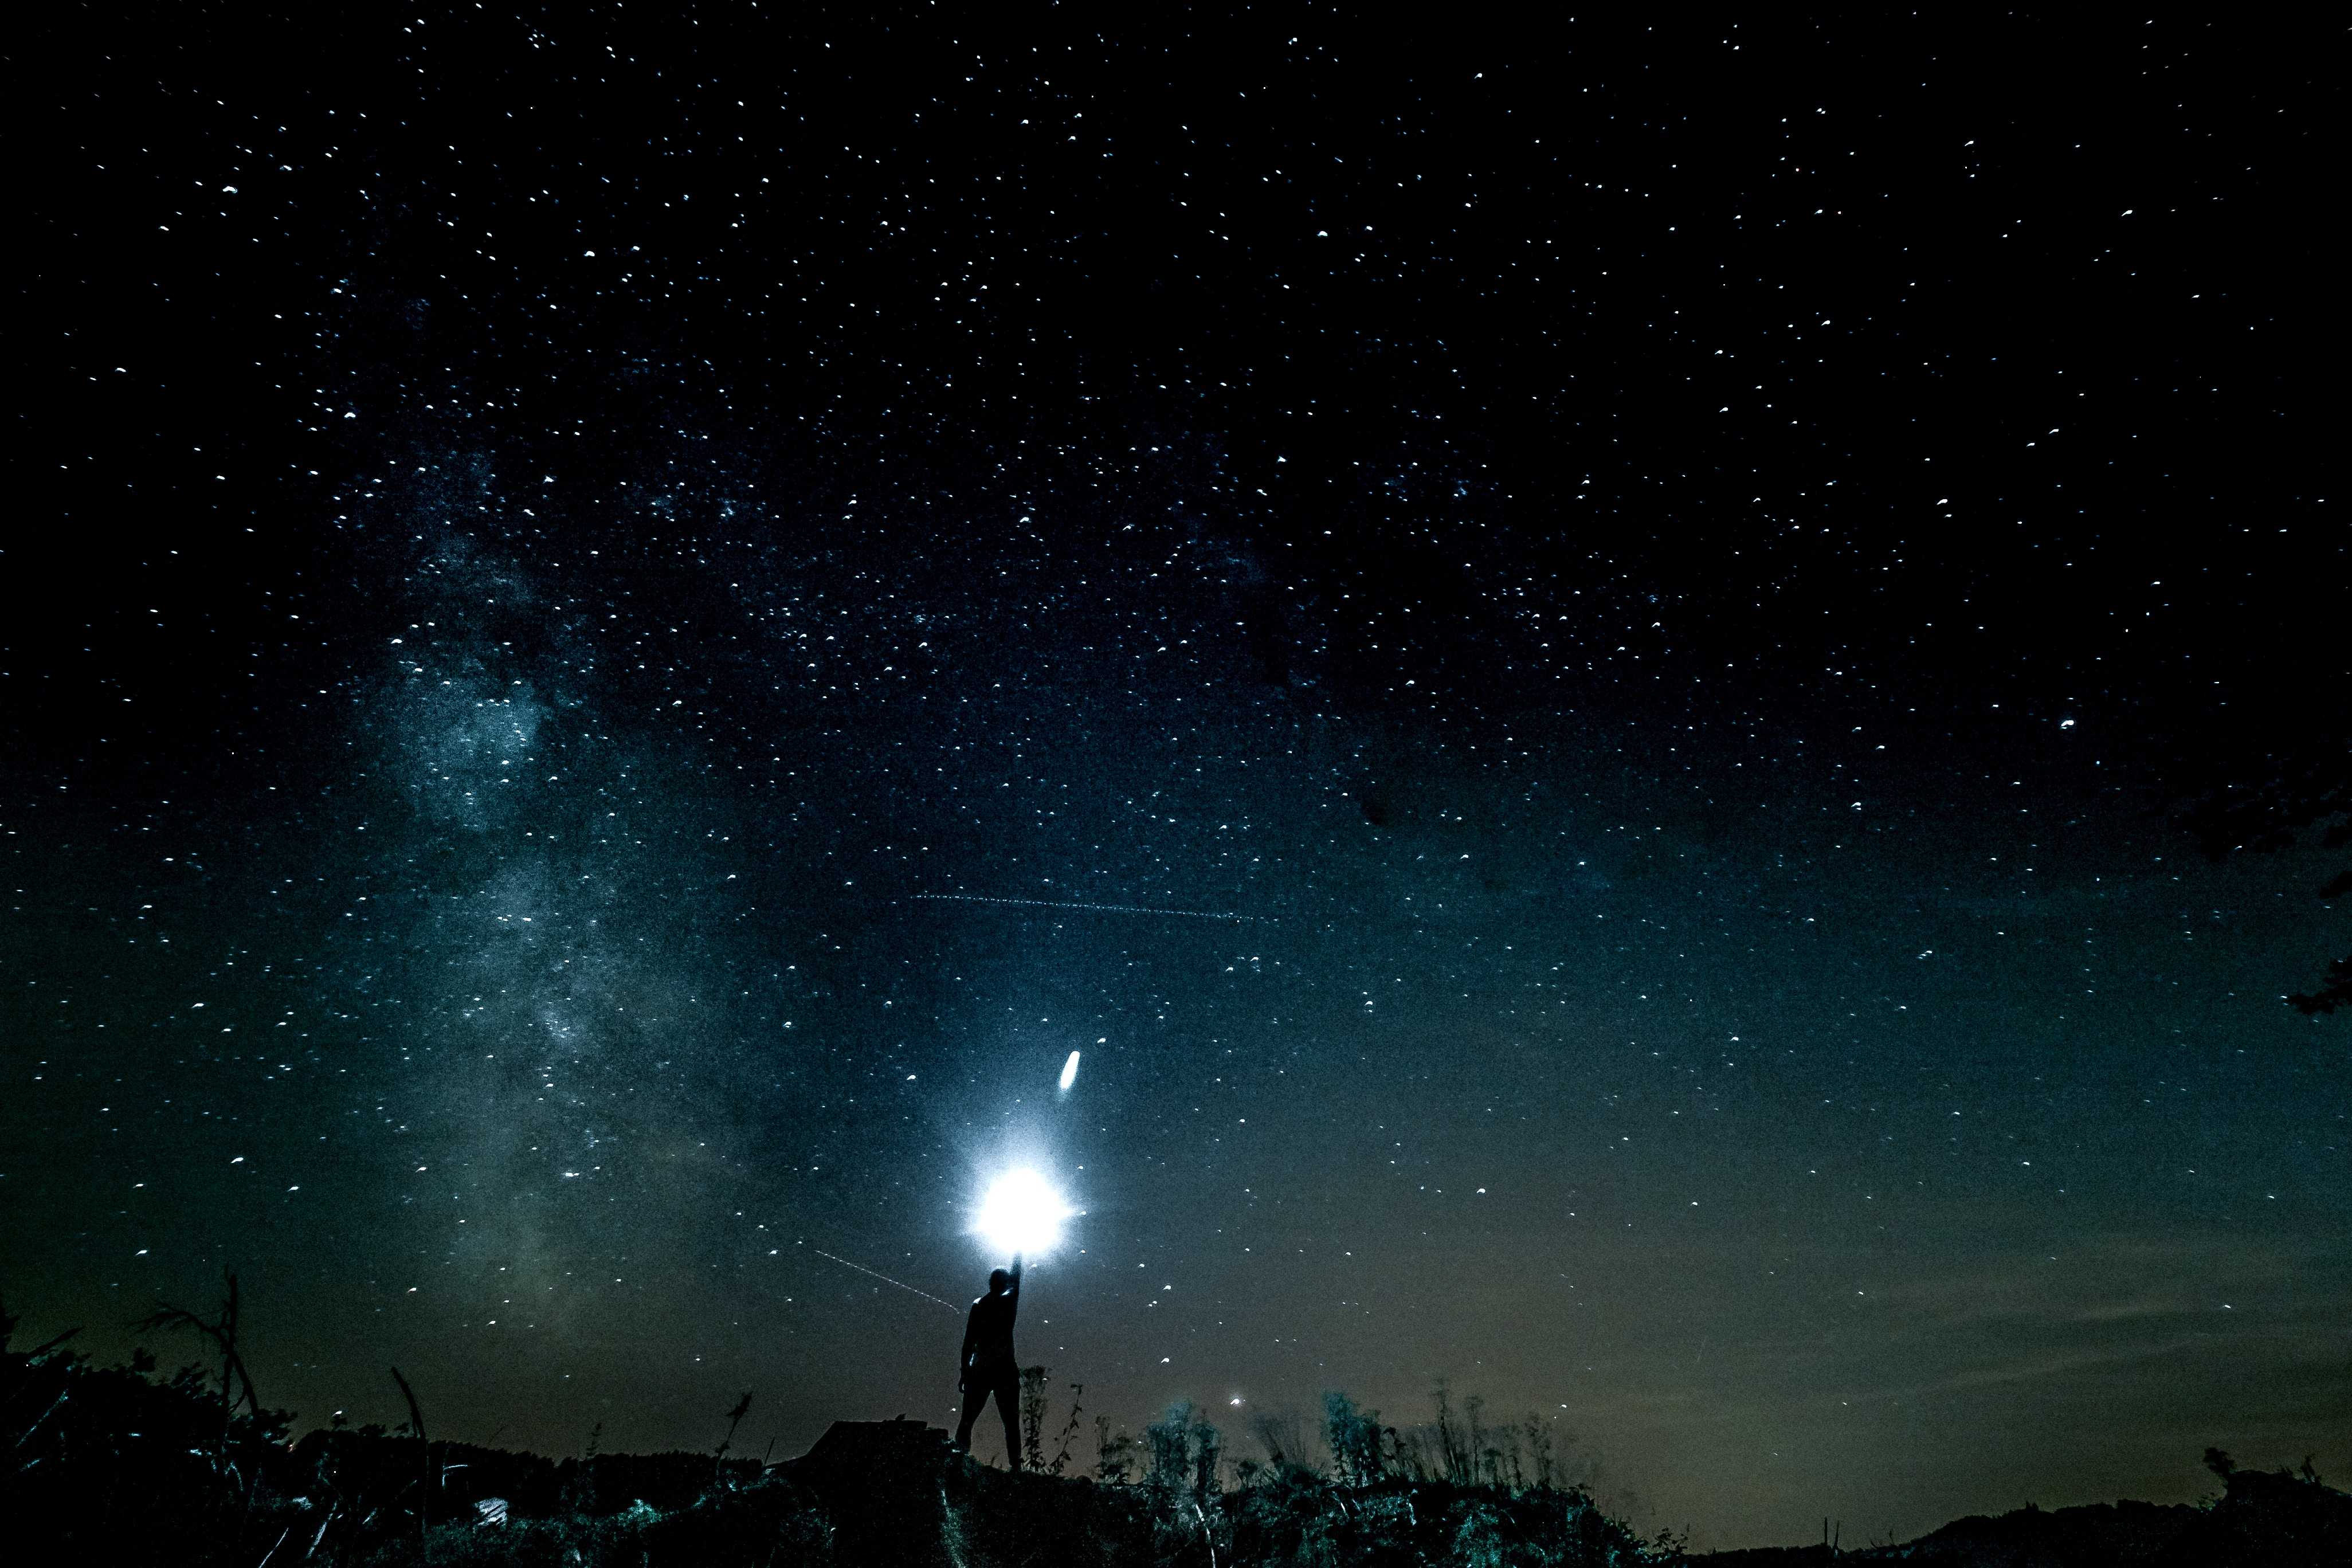 114731 download wallpaper Light, Nature, Shine, Starry Sky, Brilliance, Human, Person screensavers and pictures for free